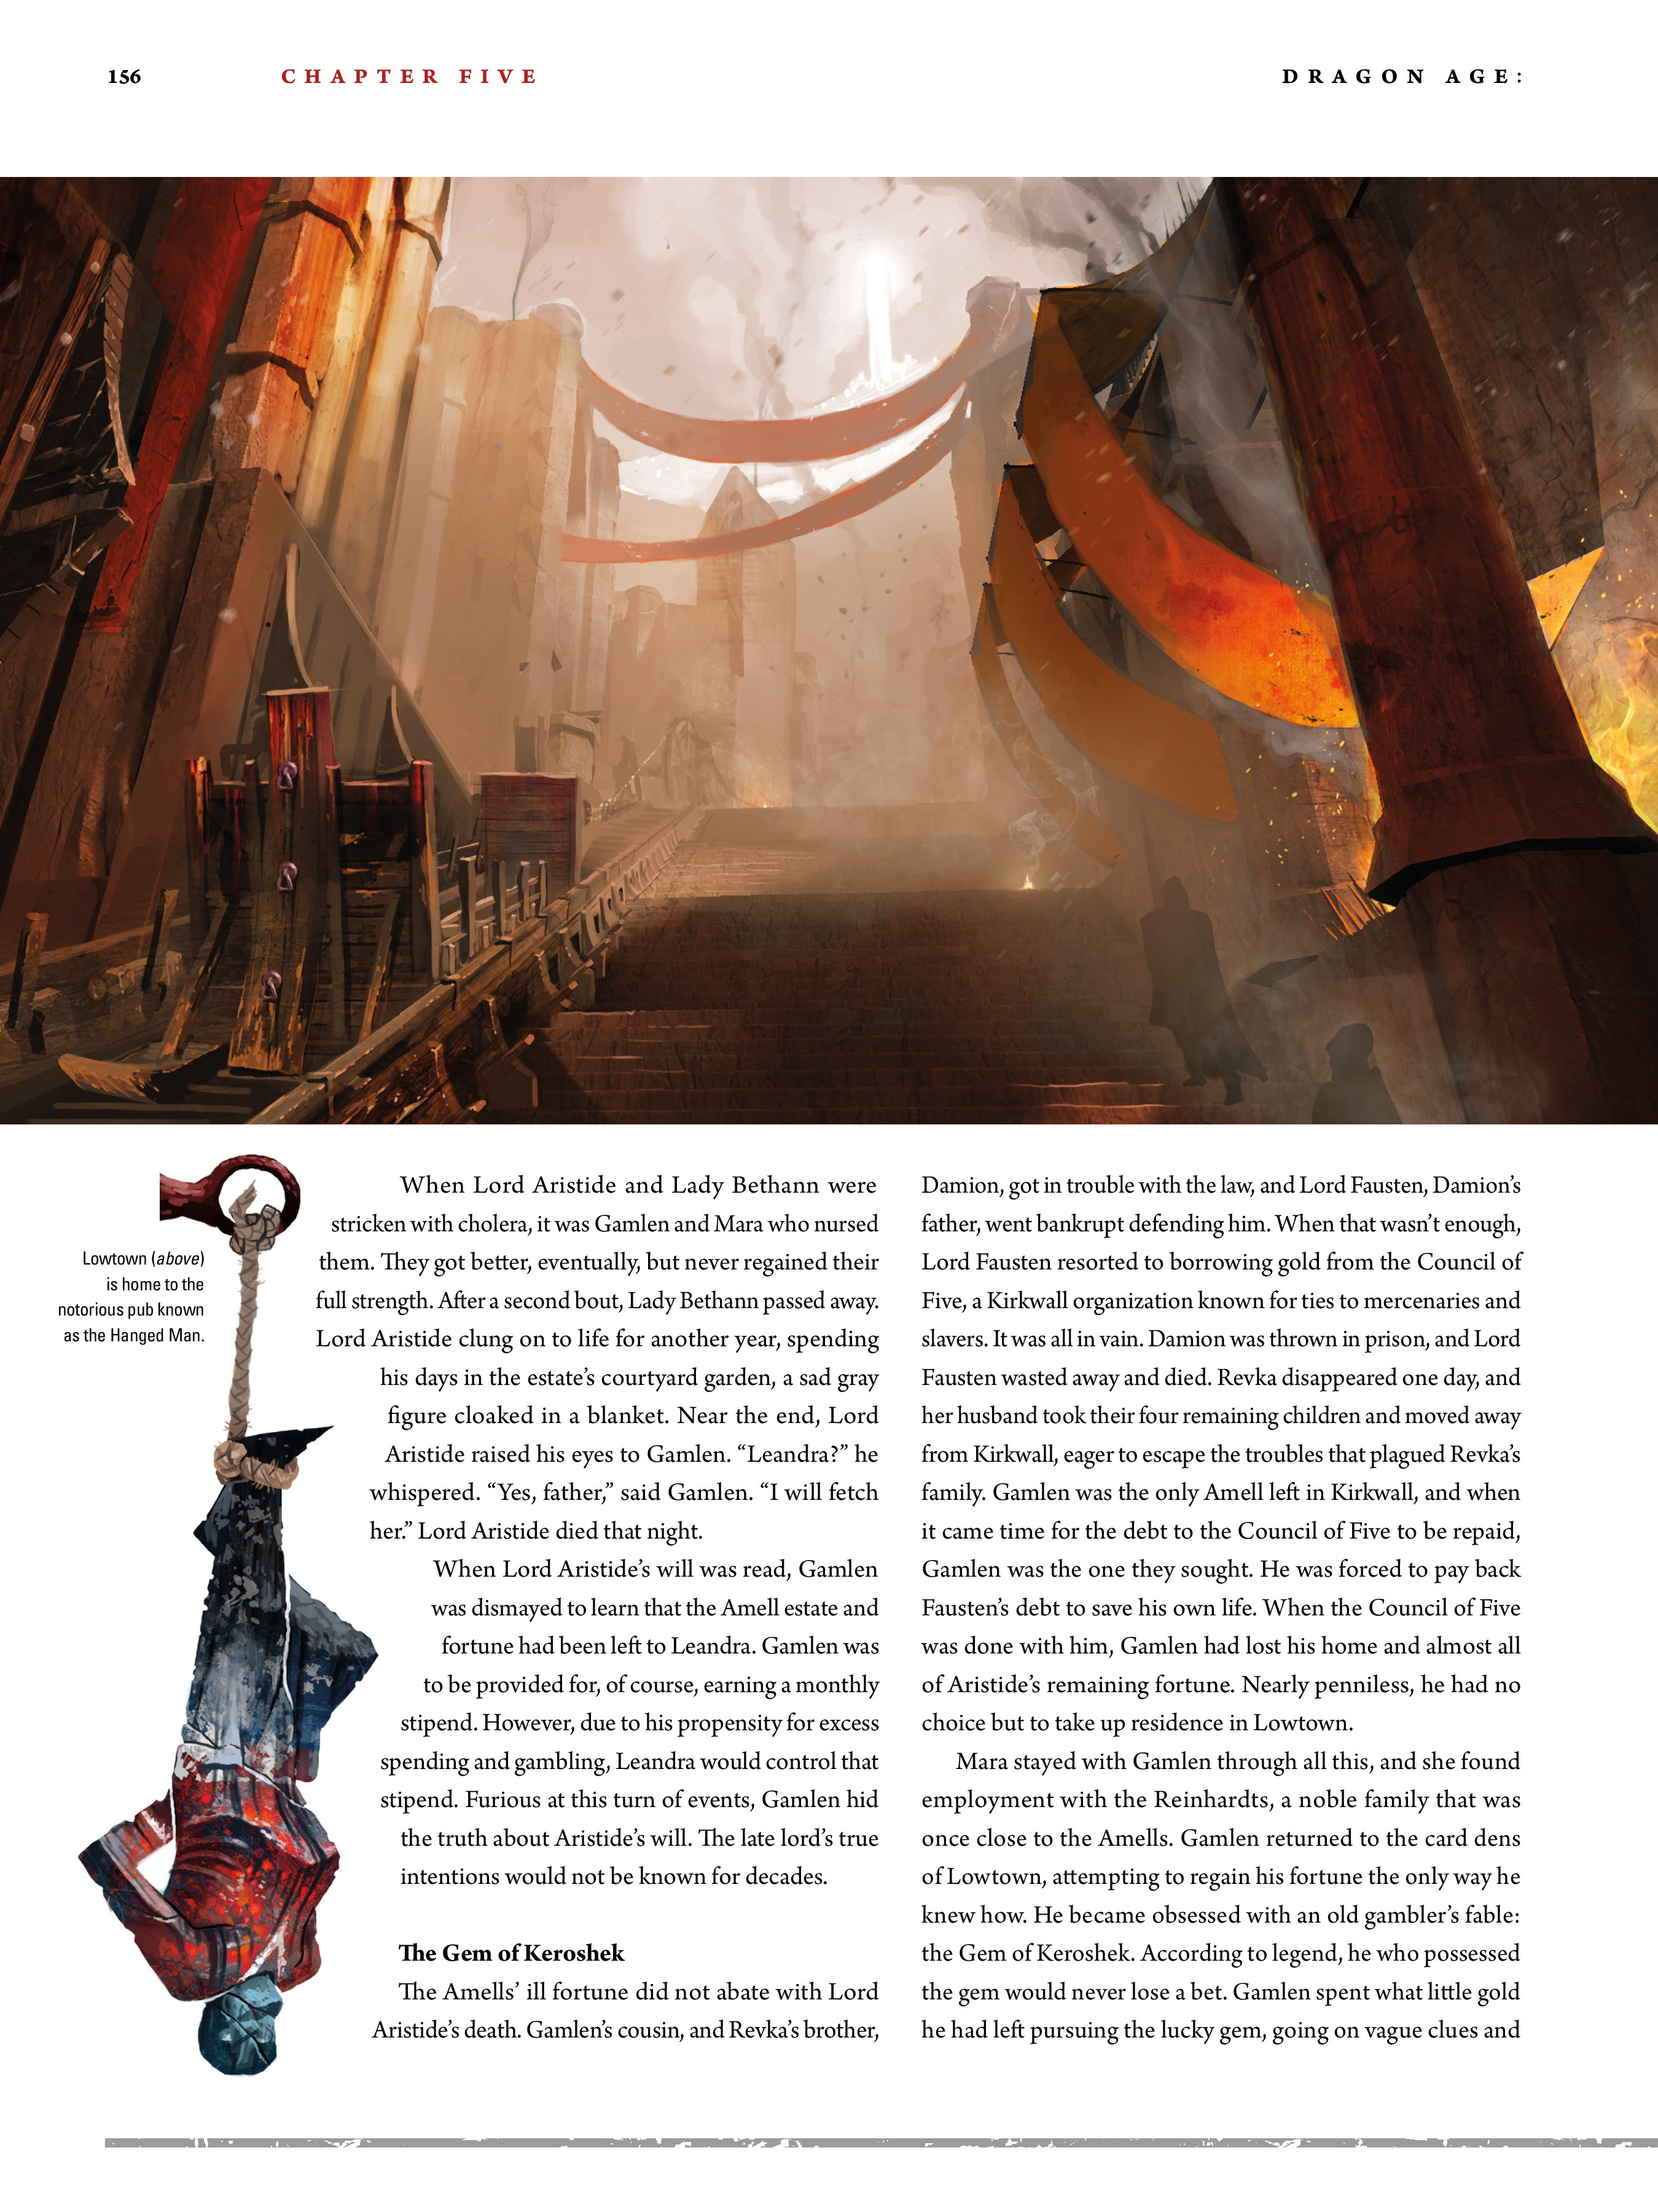 Read online Dragon Age: The World of Thedas comic -  Issue # TPB 2 - 152